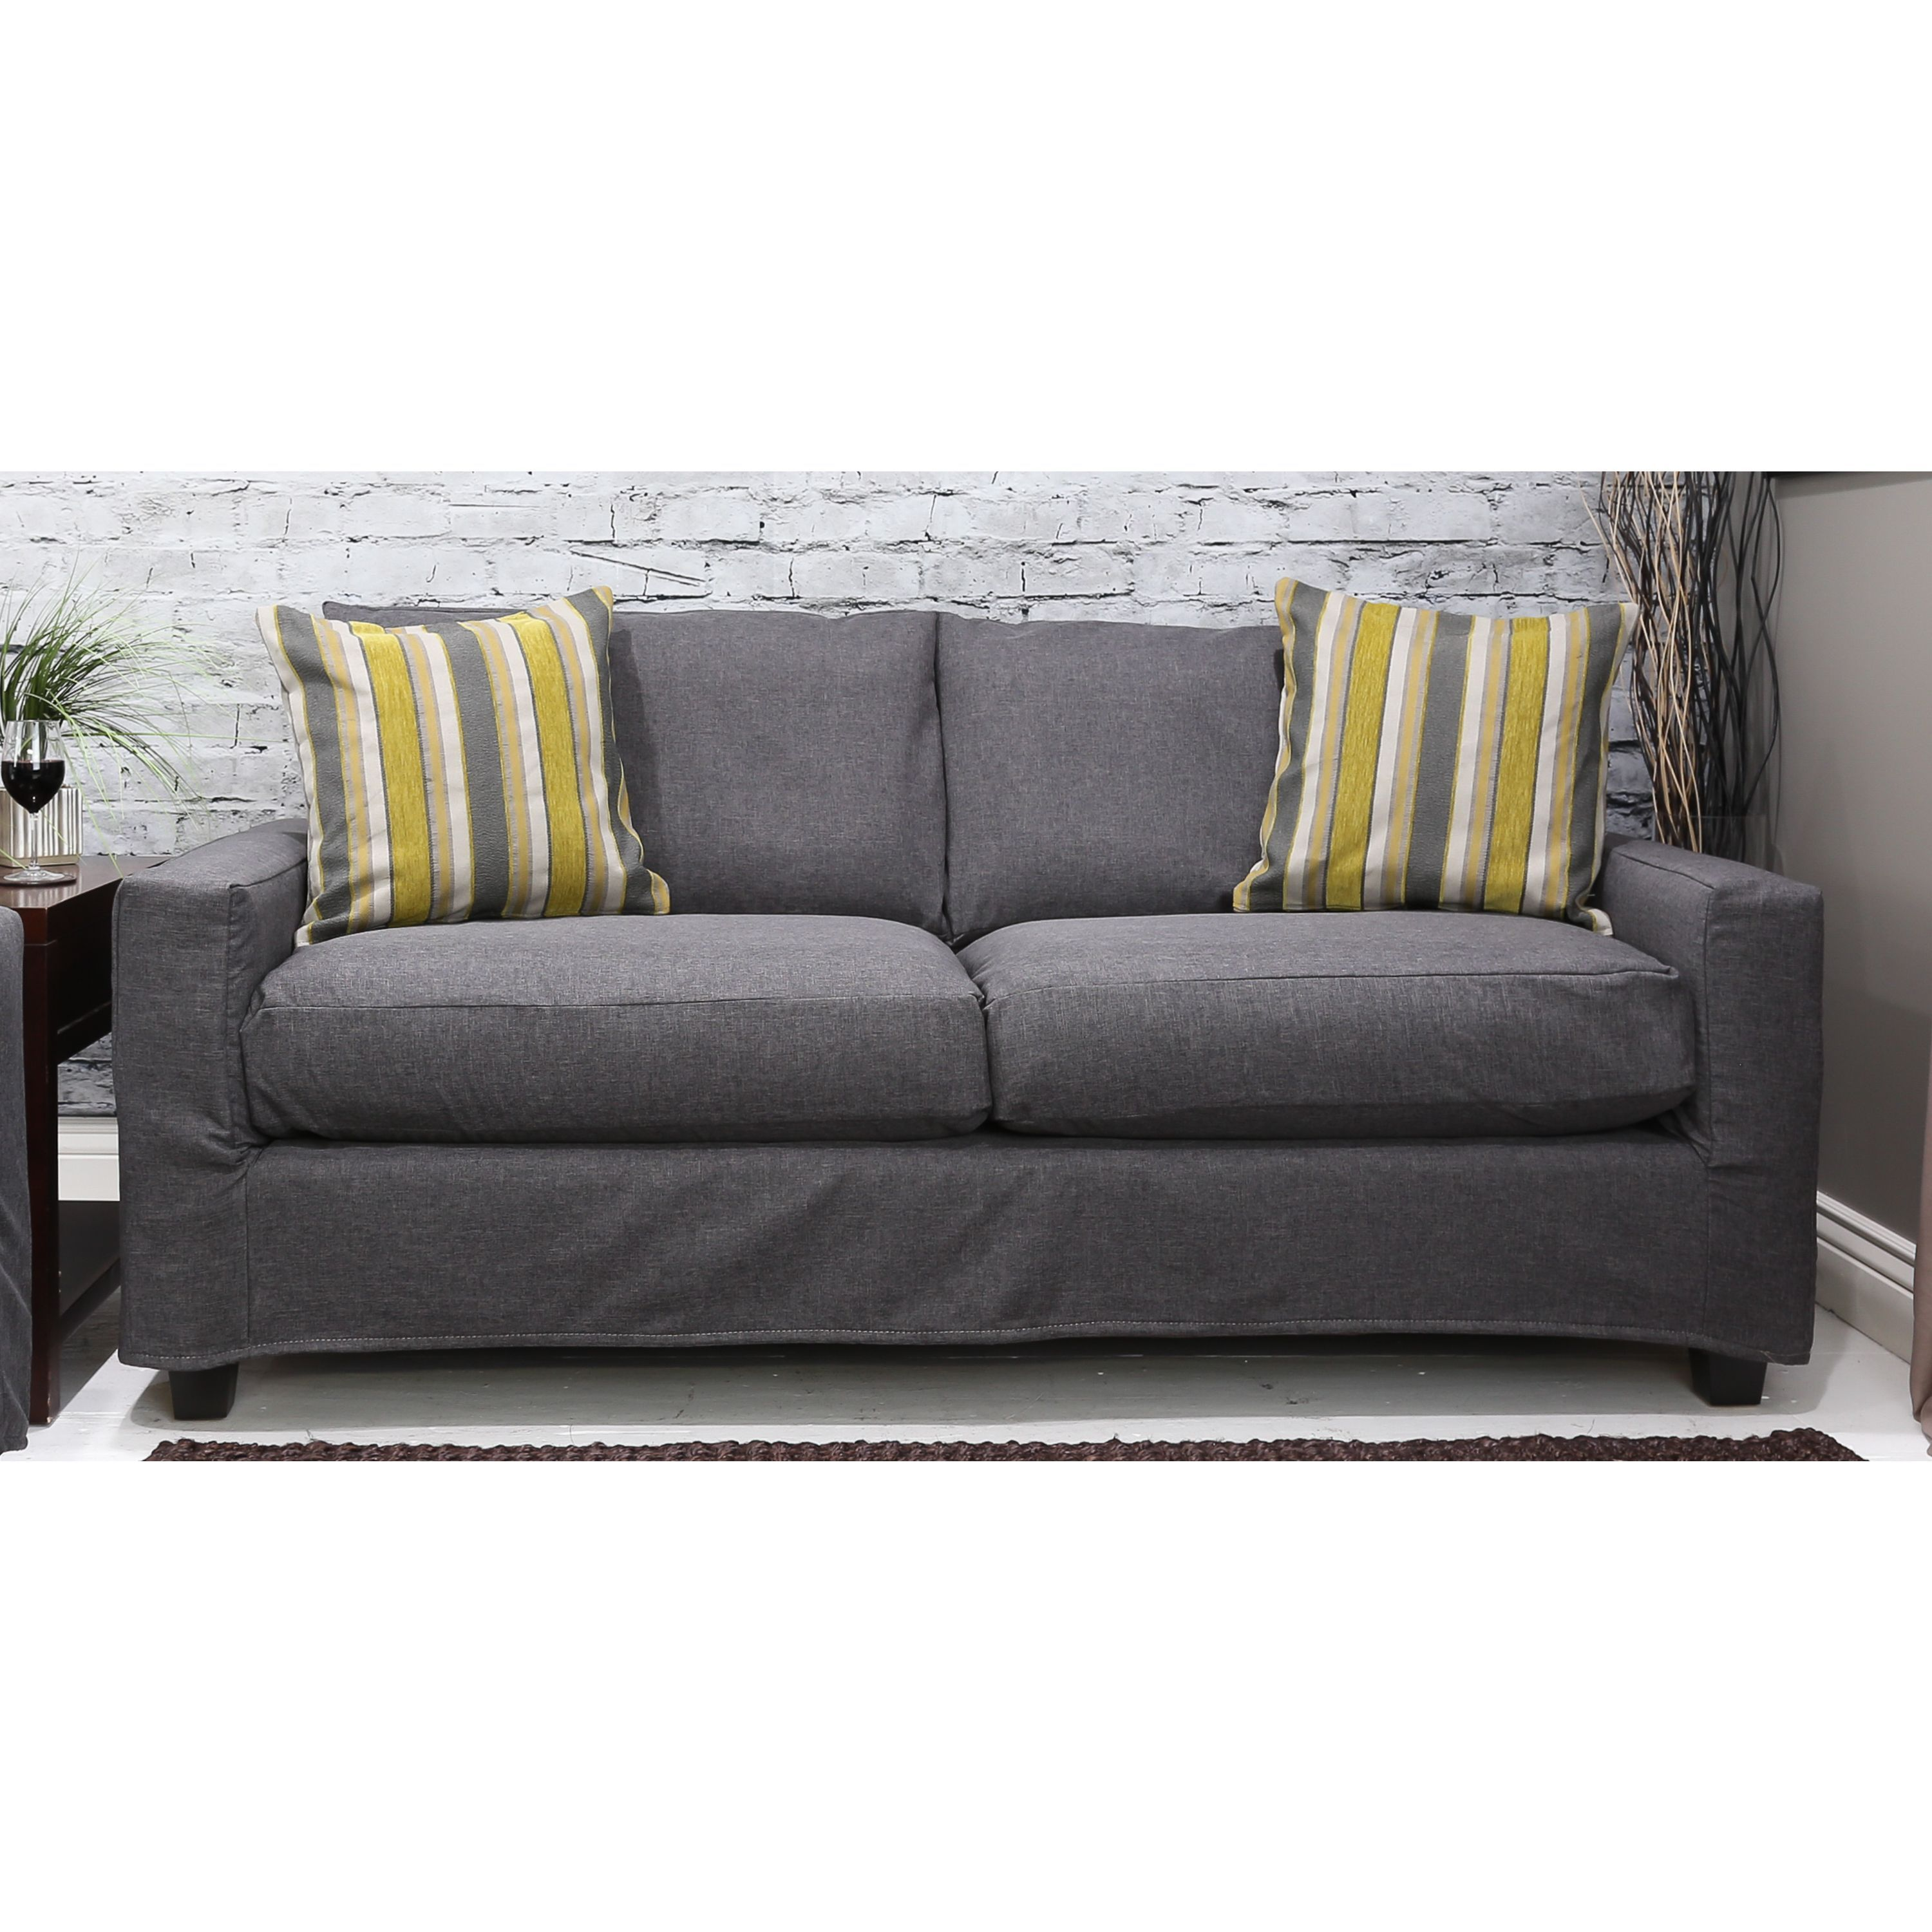 It Has An Alluring, Neutral Grey Color With A Polyester Linen Finish That  Will Dress Your Sofa In Panache.